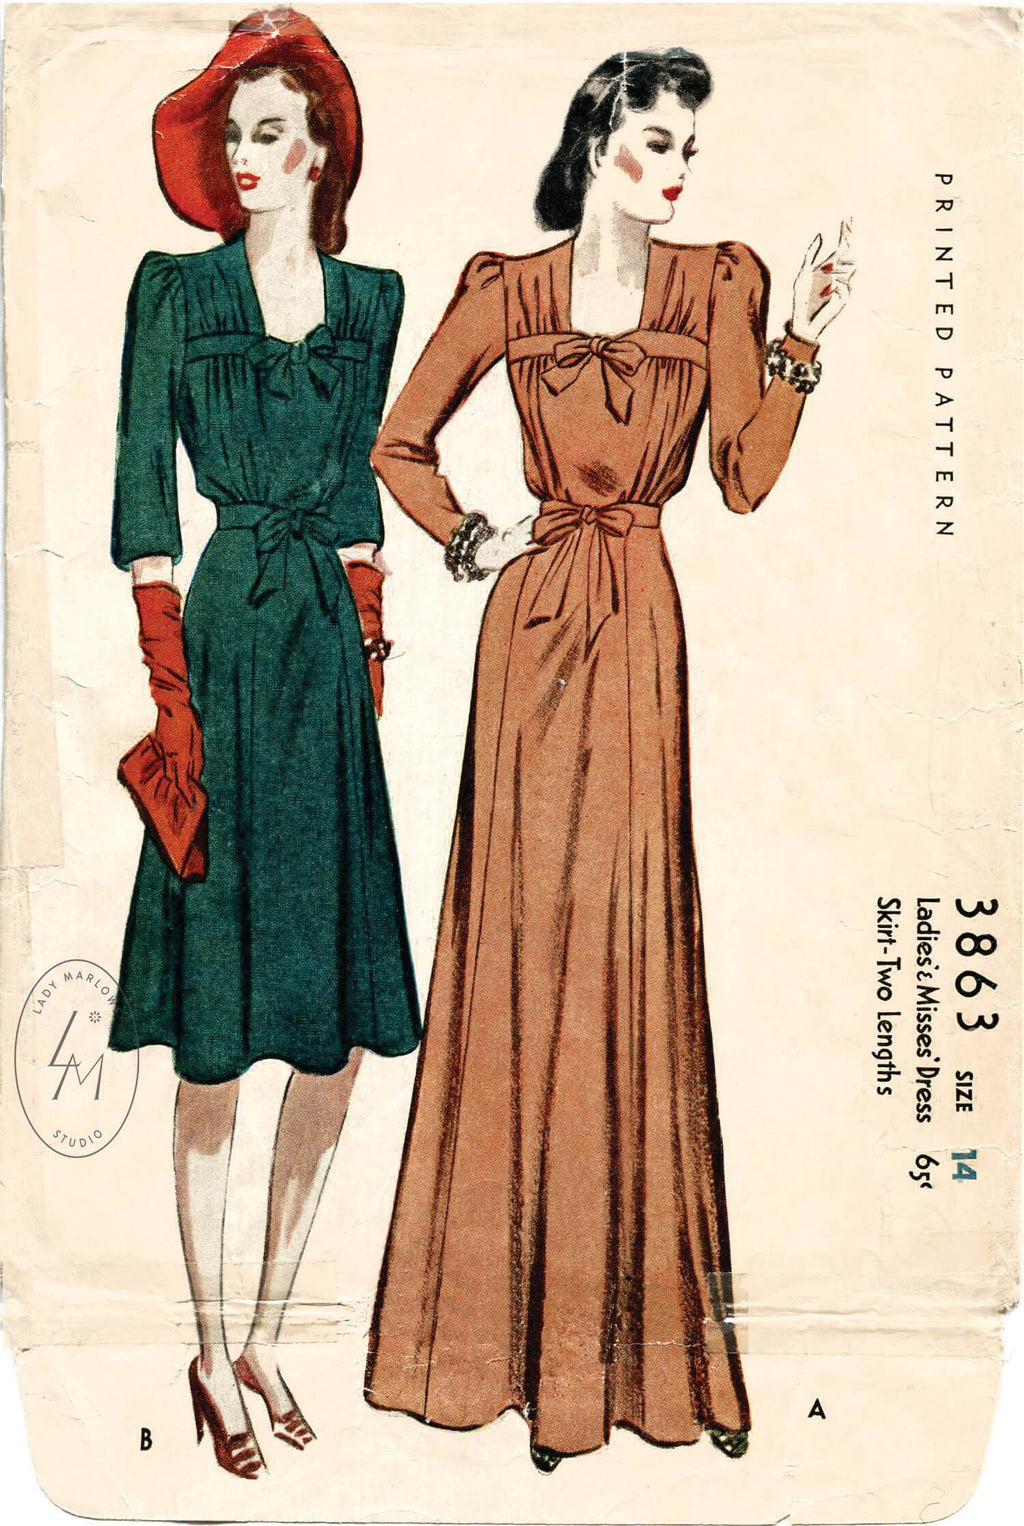 McCall 3863 1940s vintage sewing pattern 1940 40s dress evening gown